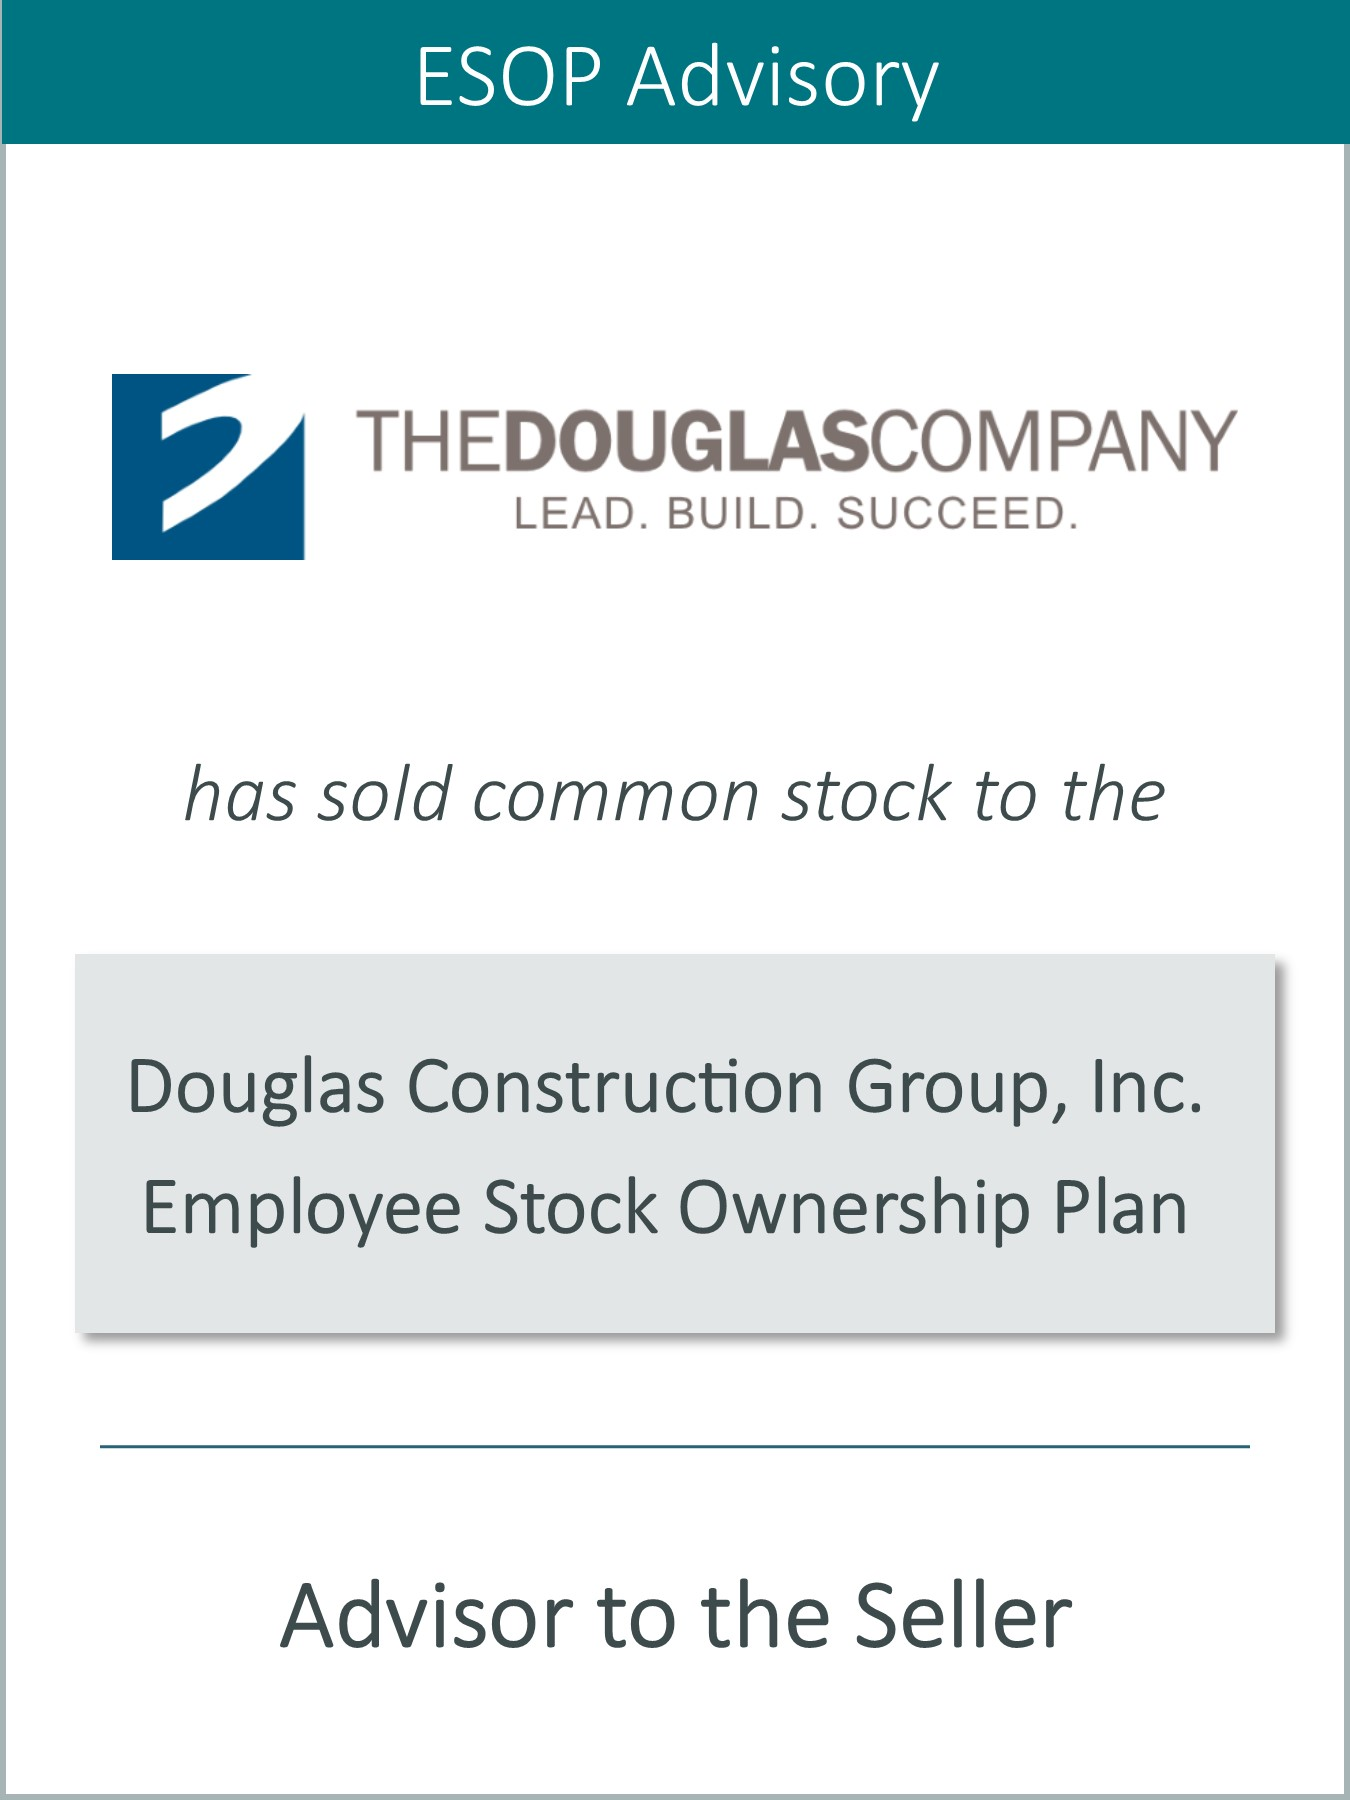 Prairie Represents The Douglas Company in its Sale to an Employee Stock Ownership Plan